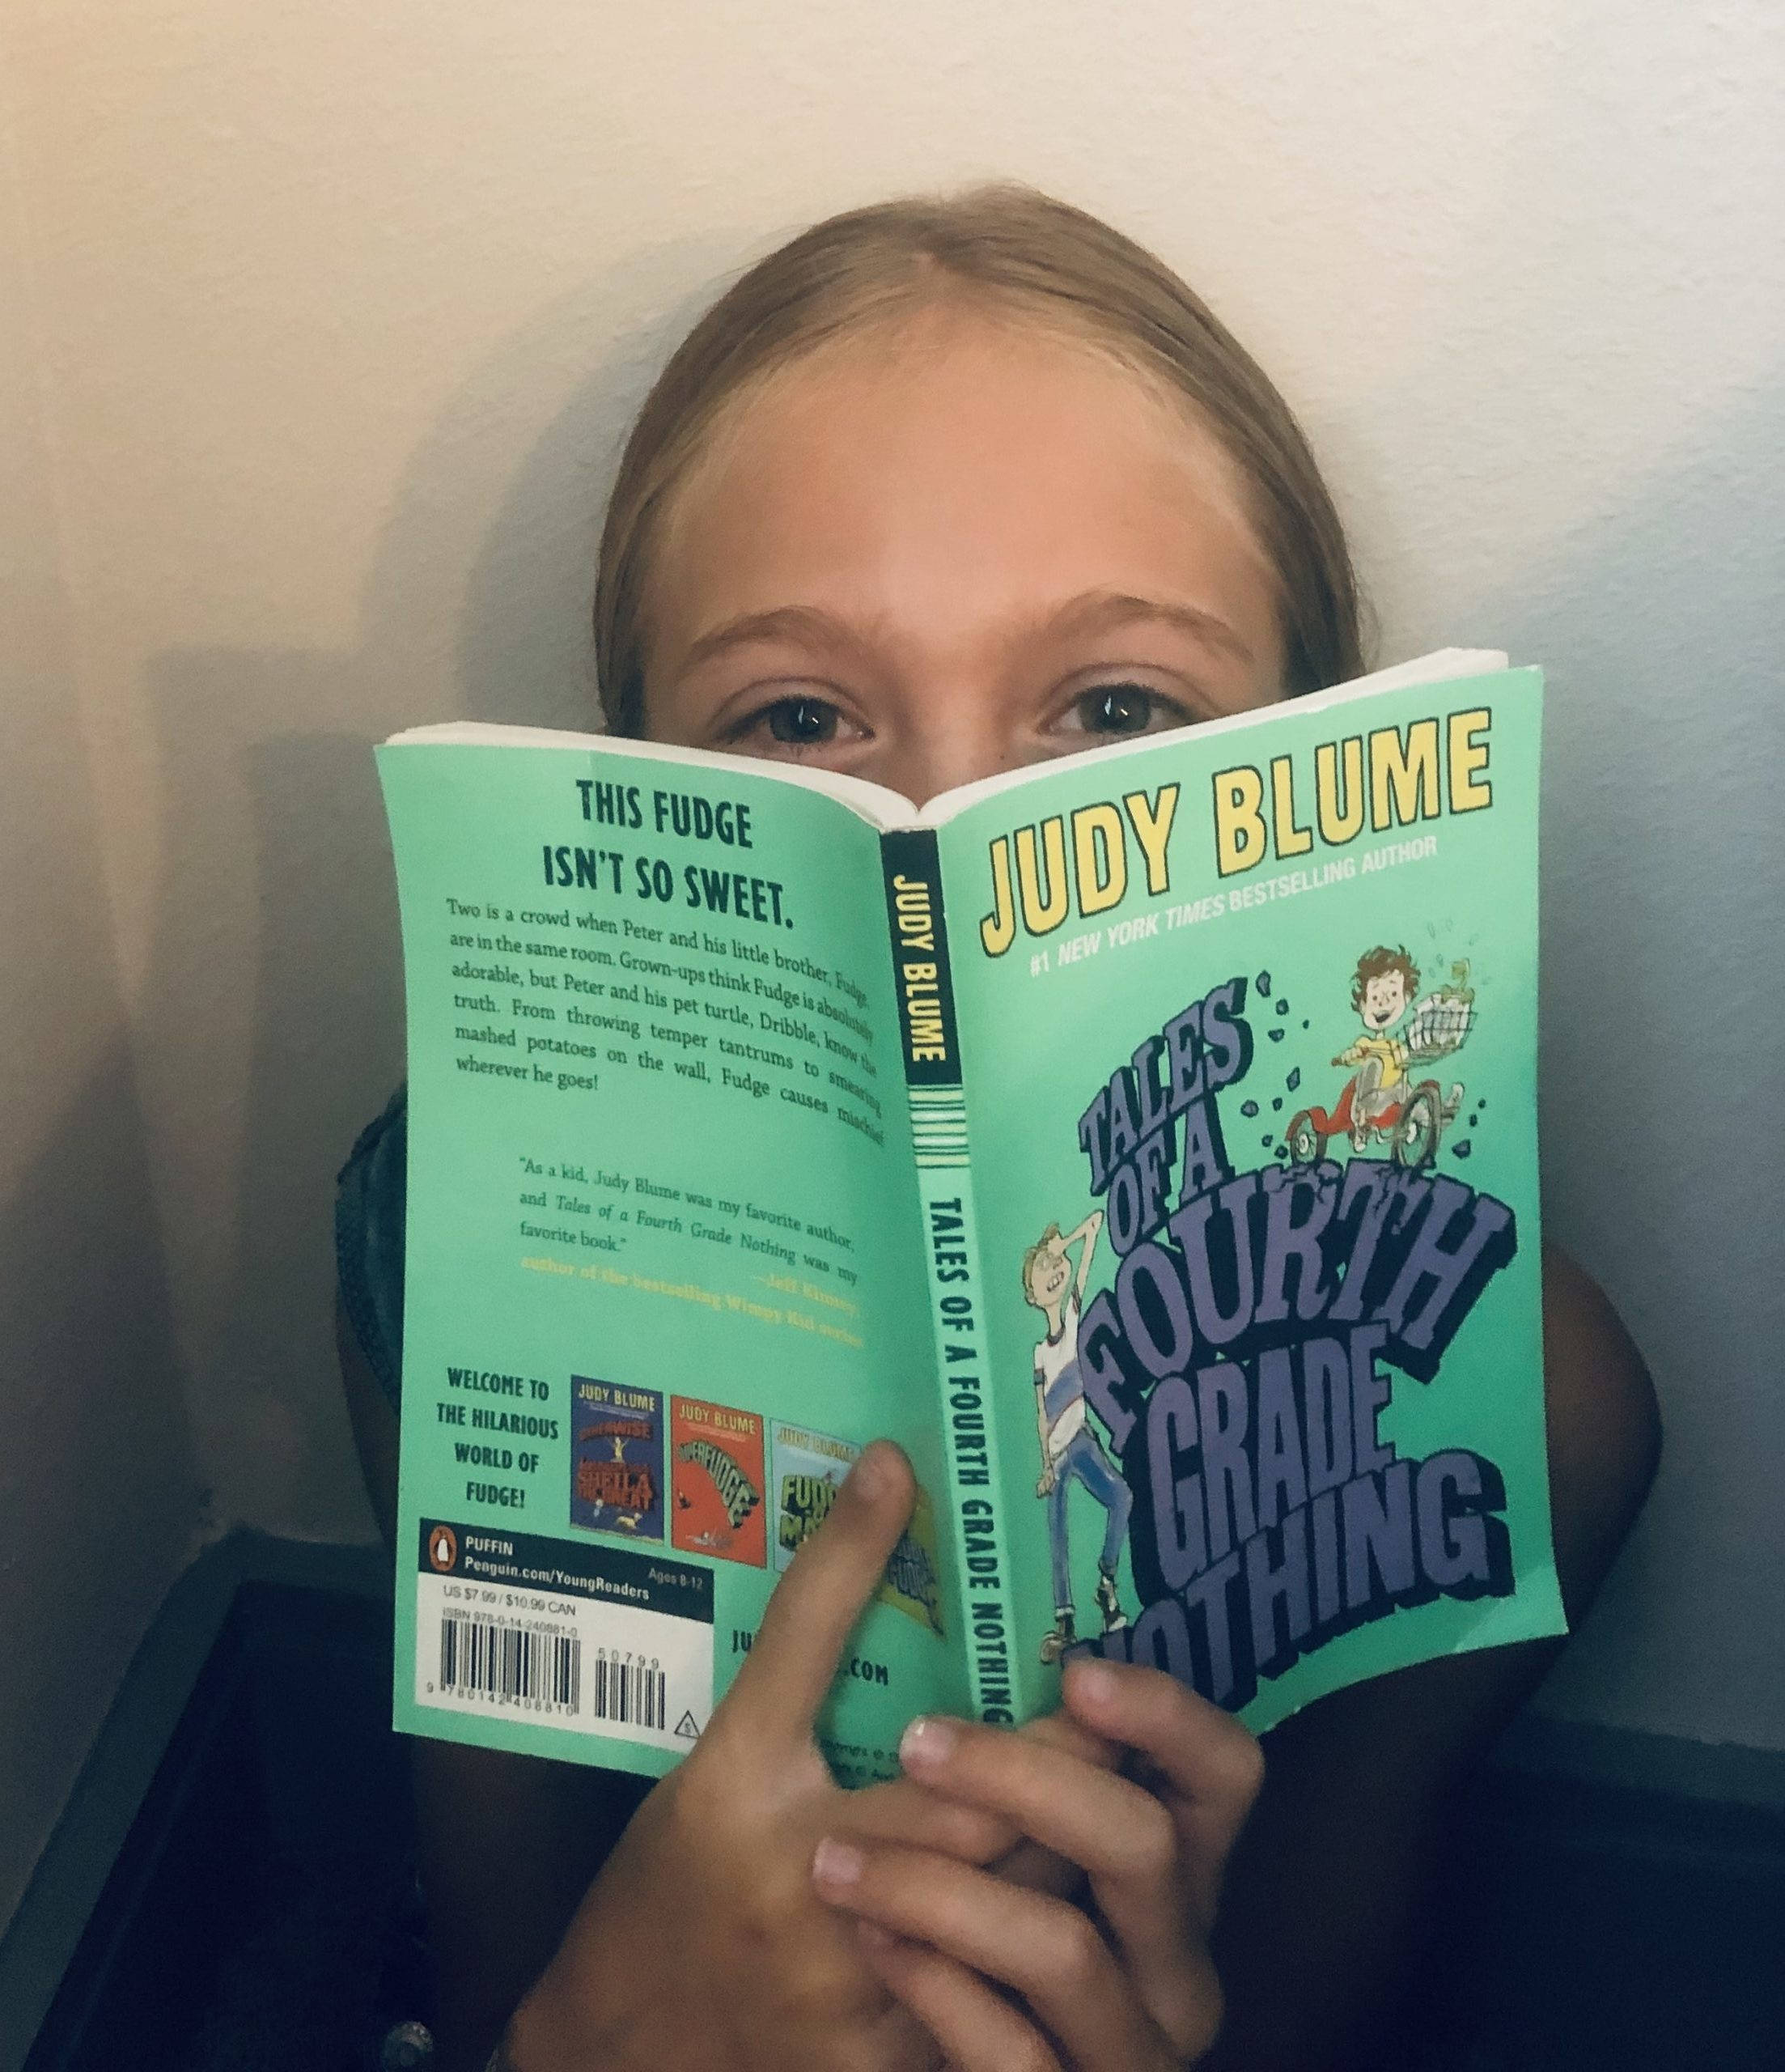 Brecken peeking over the book, Tales of a Fourth Grade Nothing by Judy Blume for the children's book review.